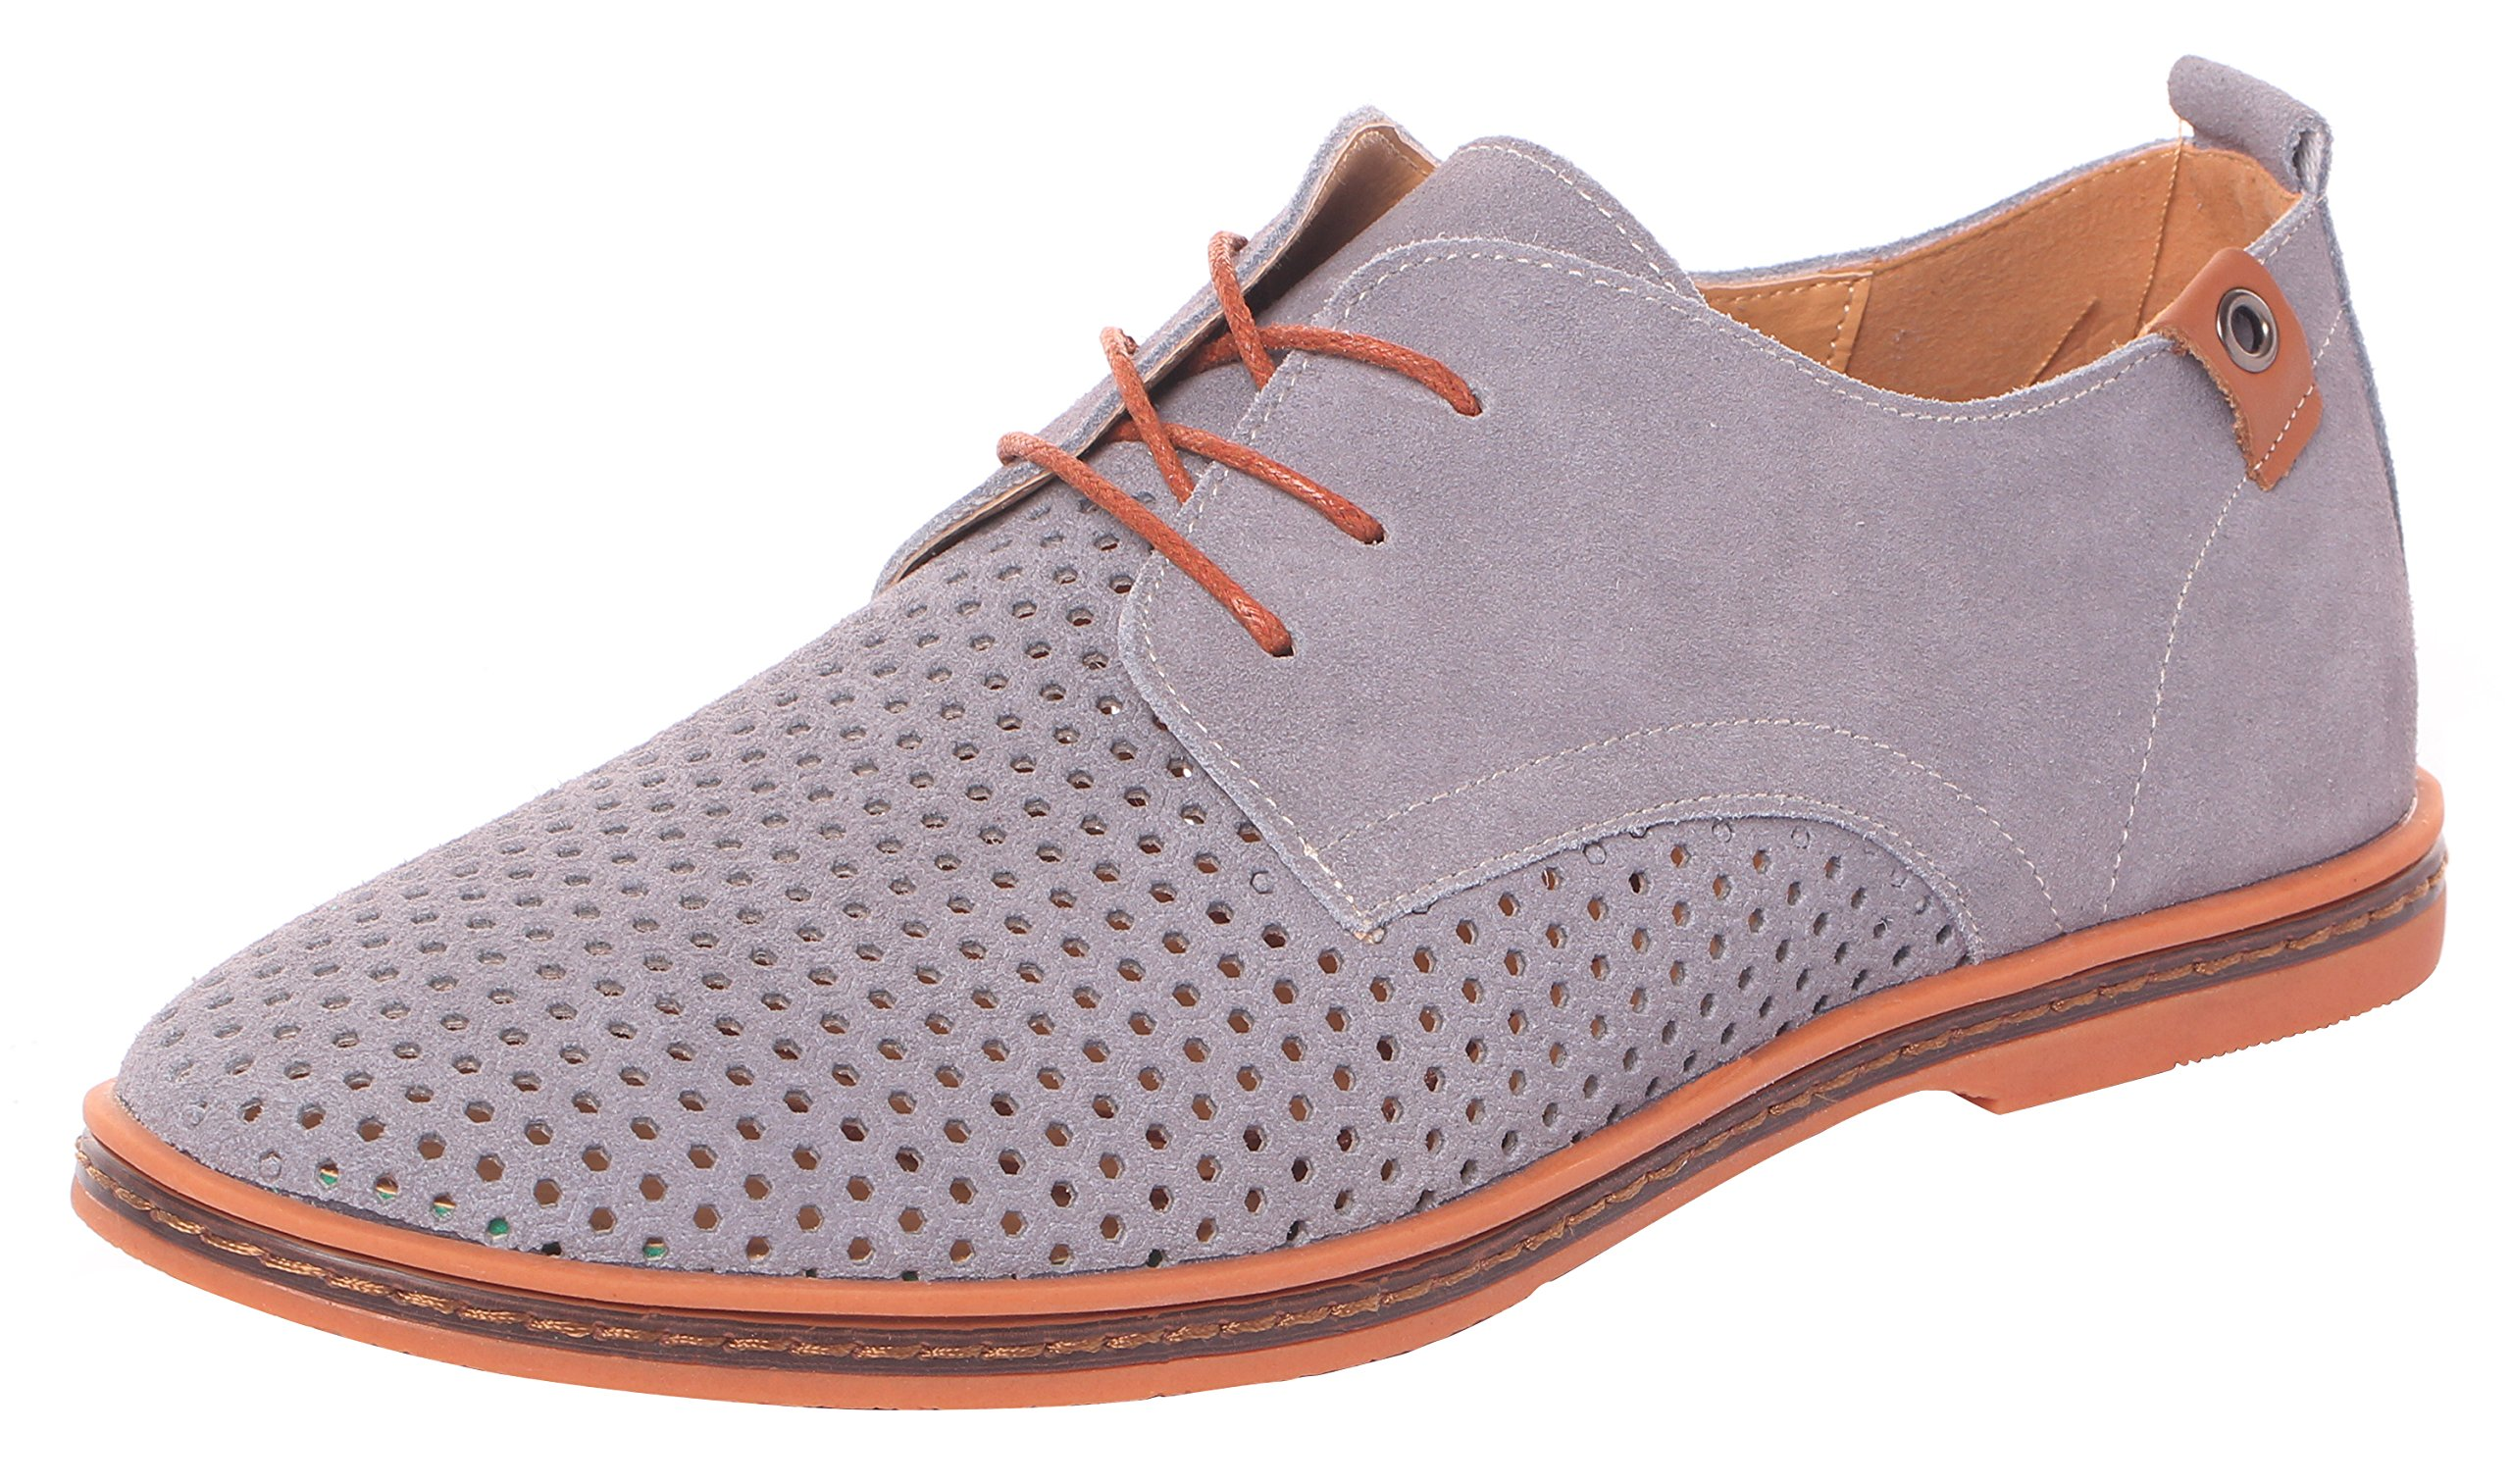 MEWOOCUE Men's Gray Classic Suede Leather Oxford Mesh Breathable Business Casual Shoes - Size 10